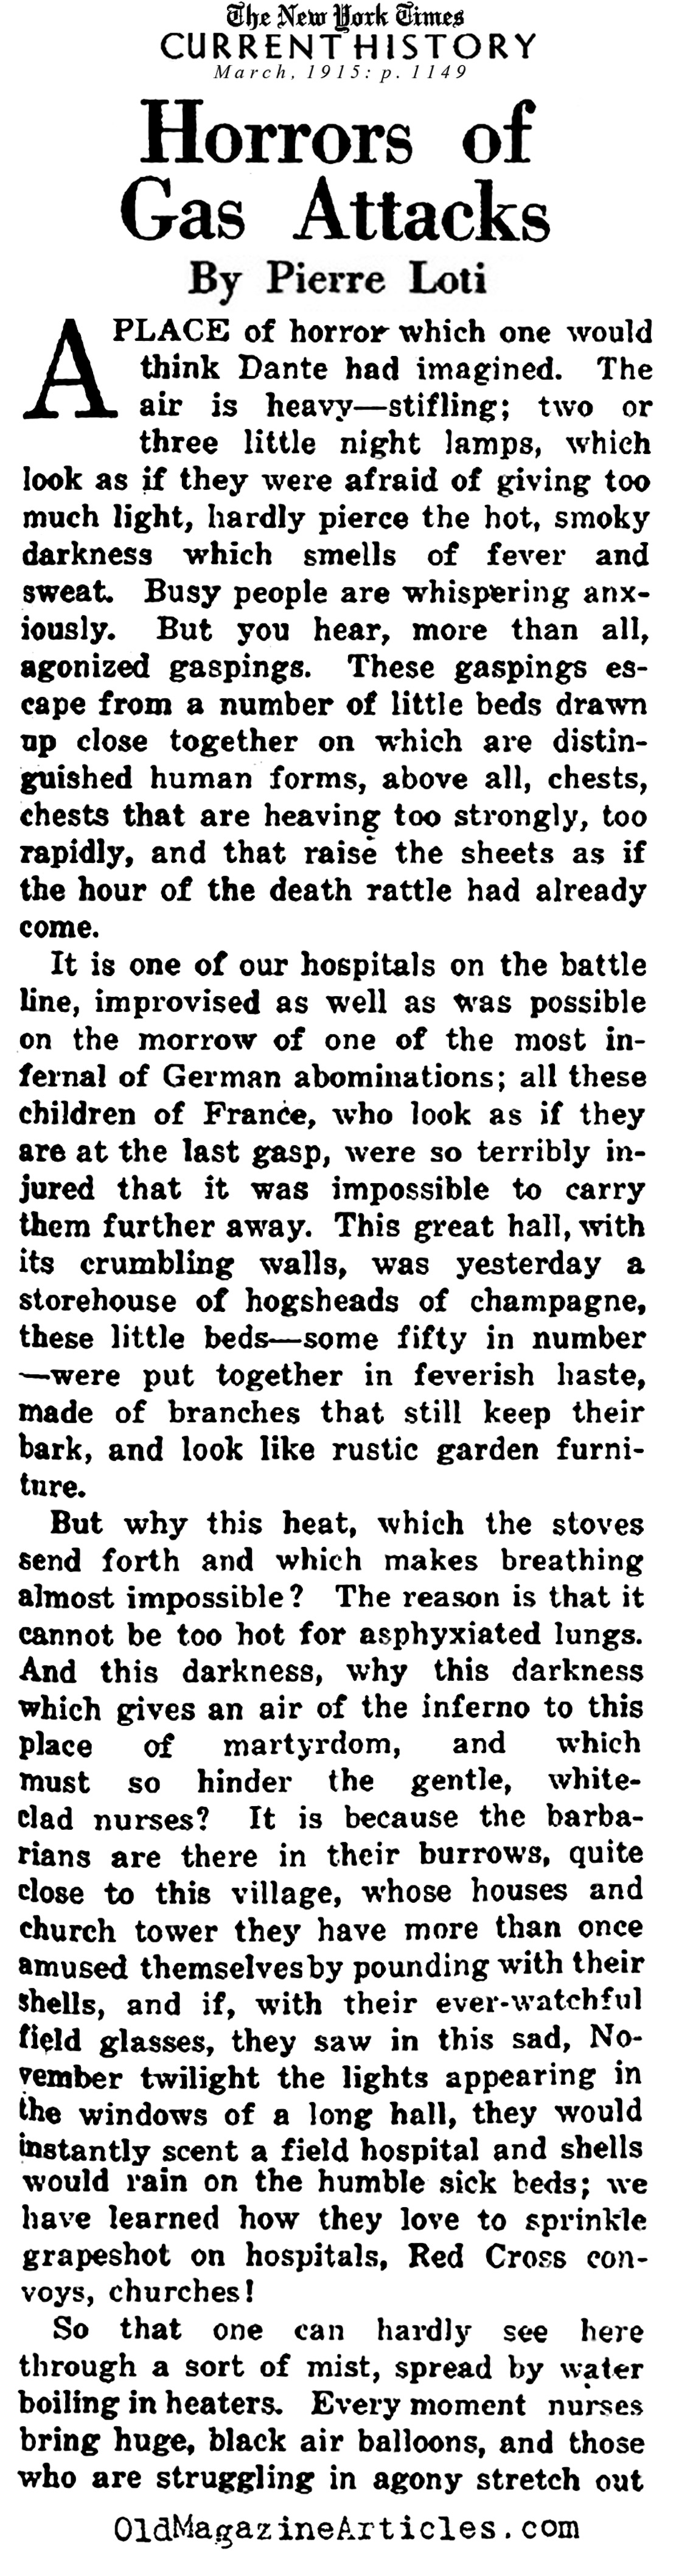 Gas Attack Horrors (NY Times, 1915)